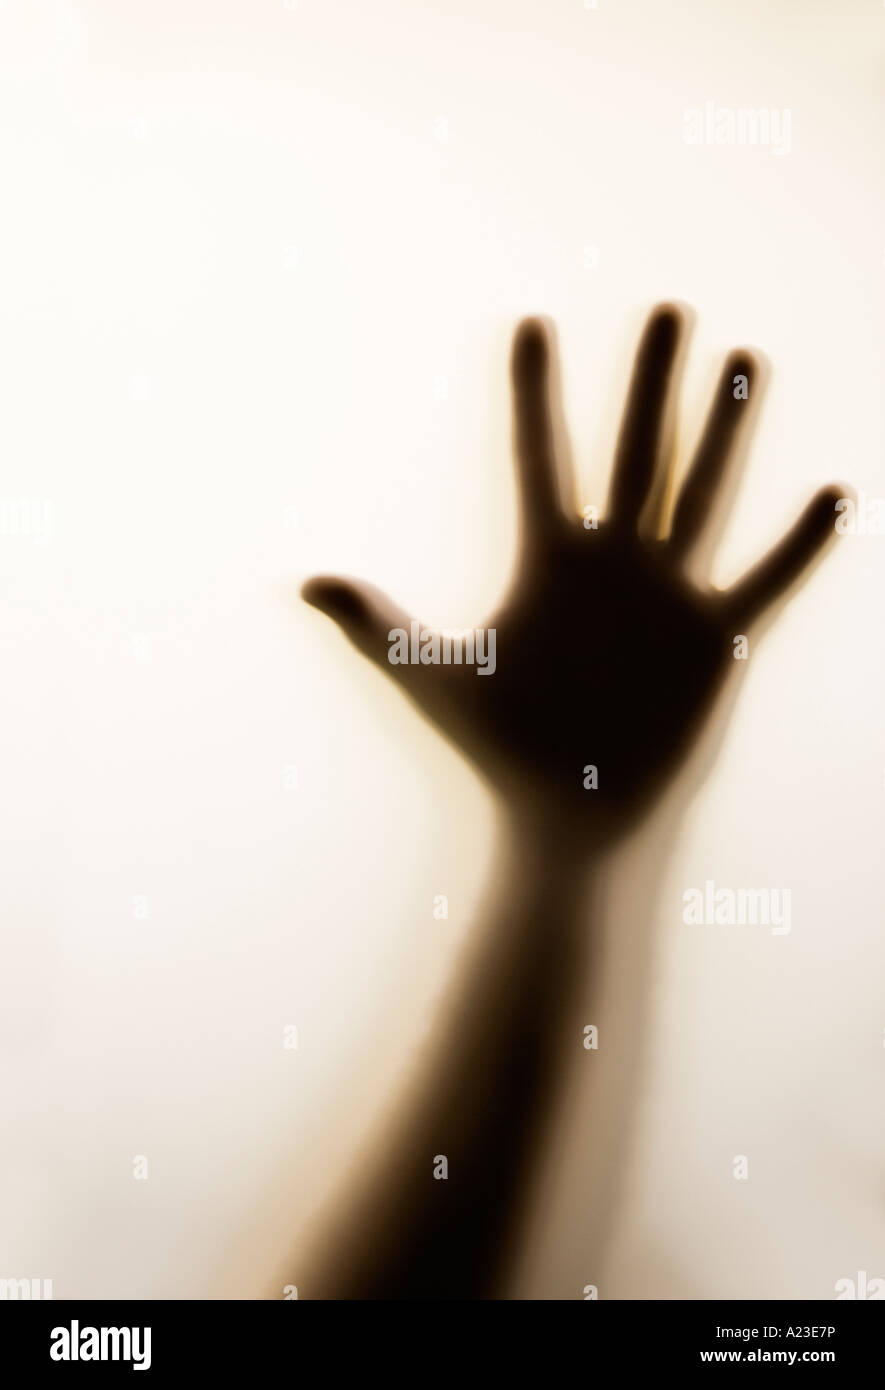 Silhouette of hand against frosted glass Adult male man - Stock Image